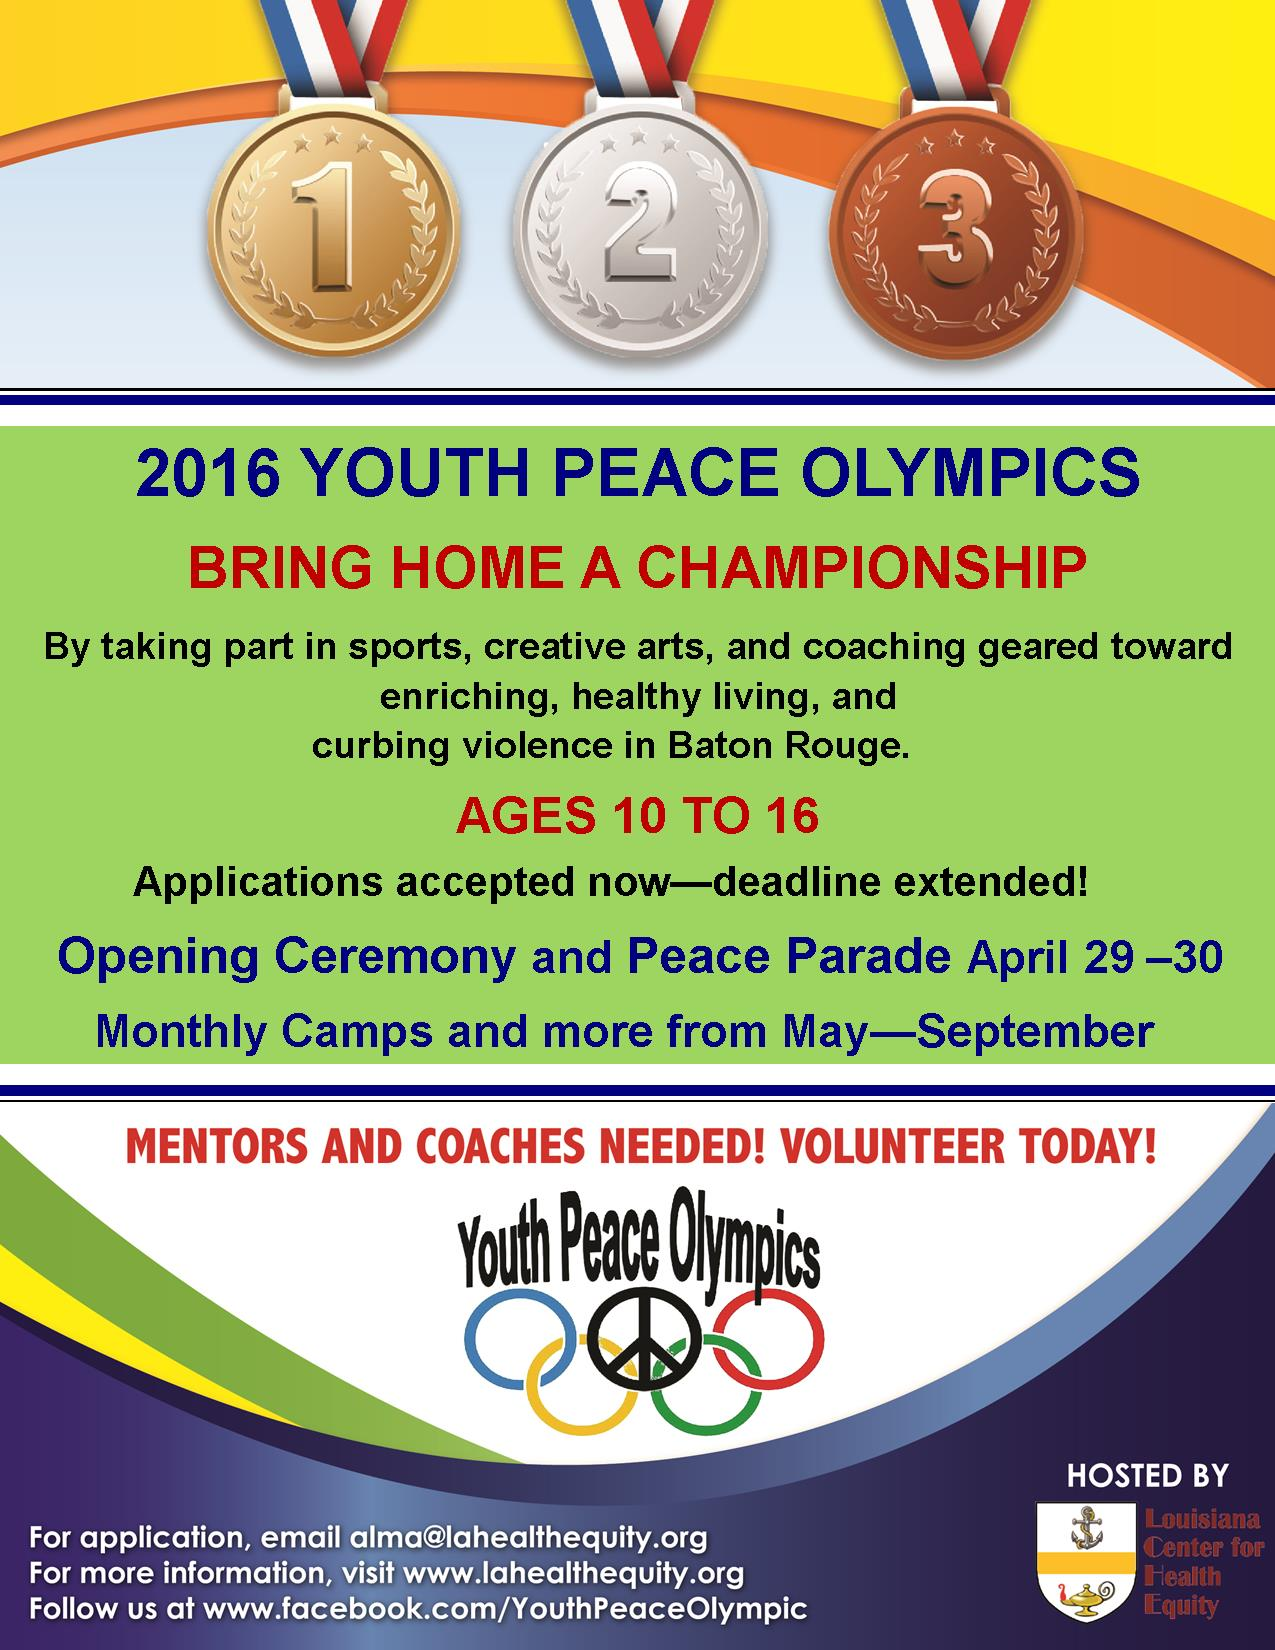 Youth Peace Olympics 2016